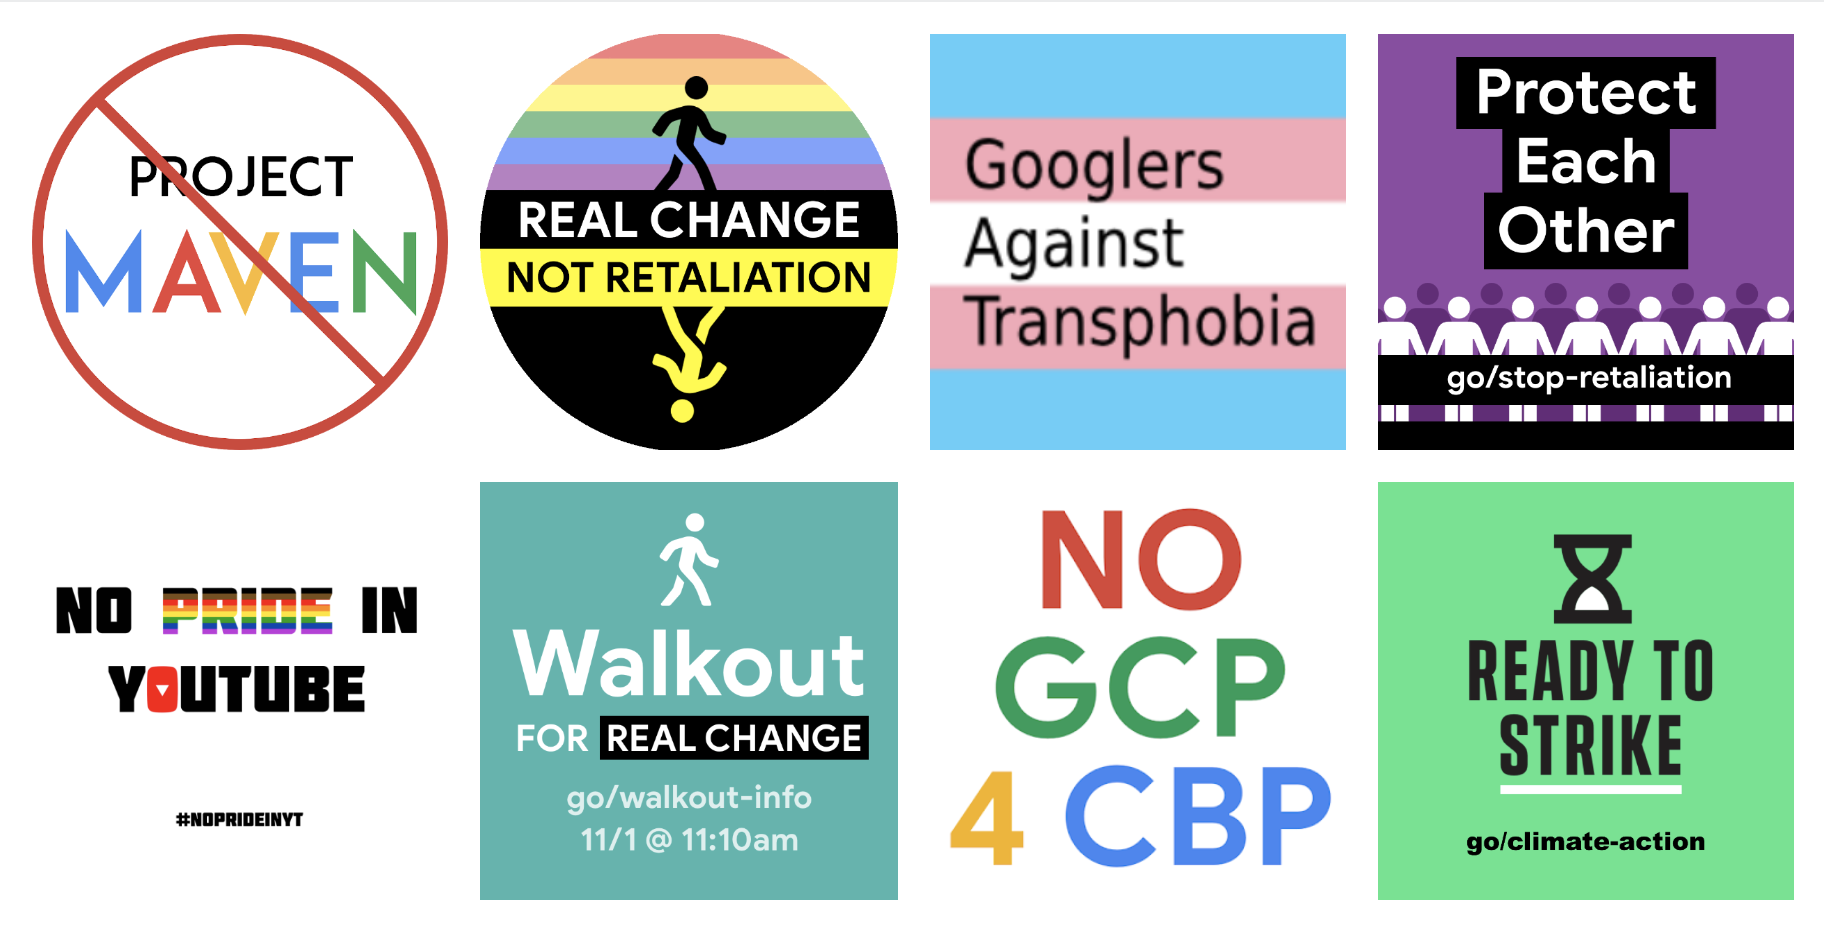 Logos: #GoogleWalkout, anti-Project Maven, Real Change Not Retaliation, #StandAgainstTransphobia, #NoPrideInYT, #NoGCPforCBP